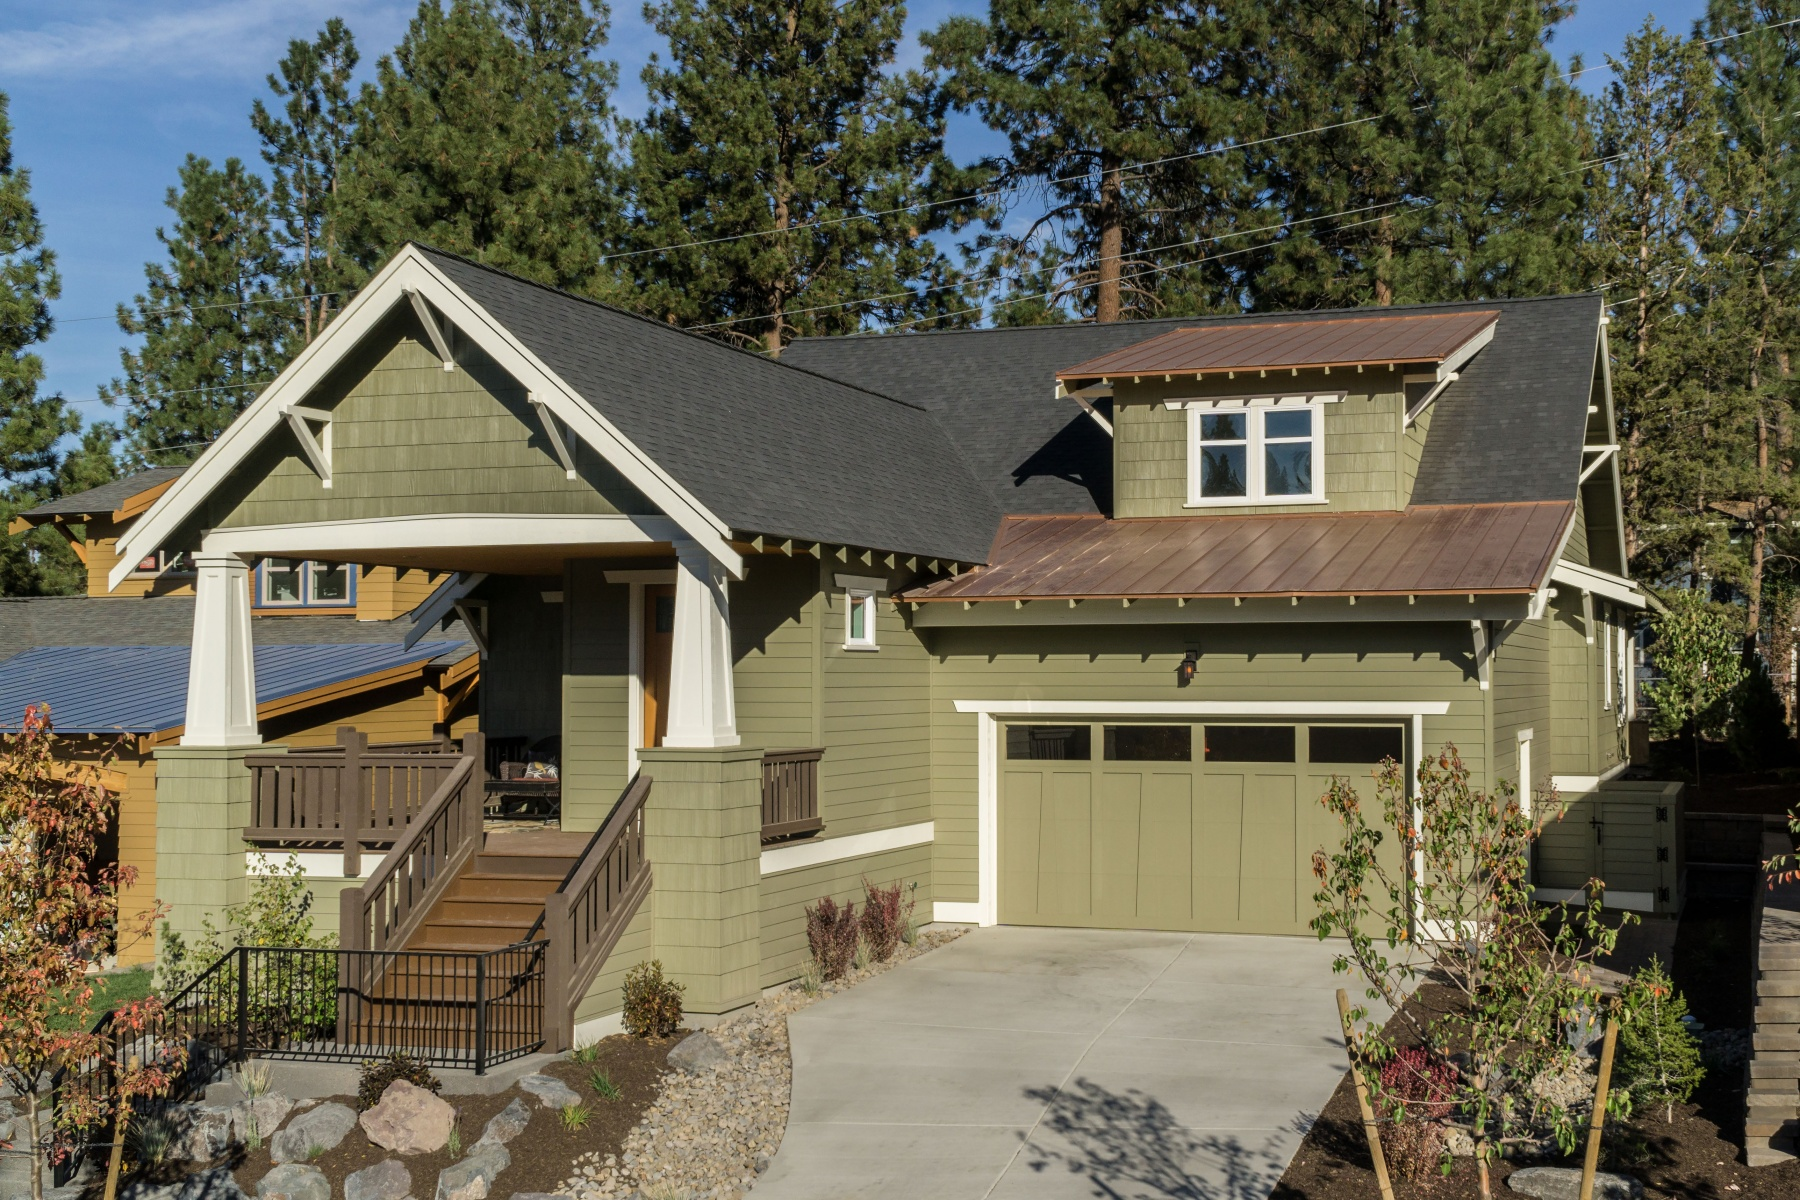 Single Family Home for Sale at 1124 NW 18th, BEND 1124 NW 18th St Bend, Oregon, 97701 United States